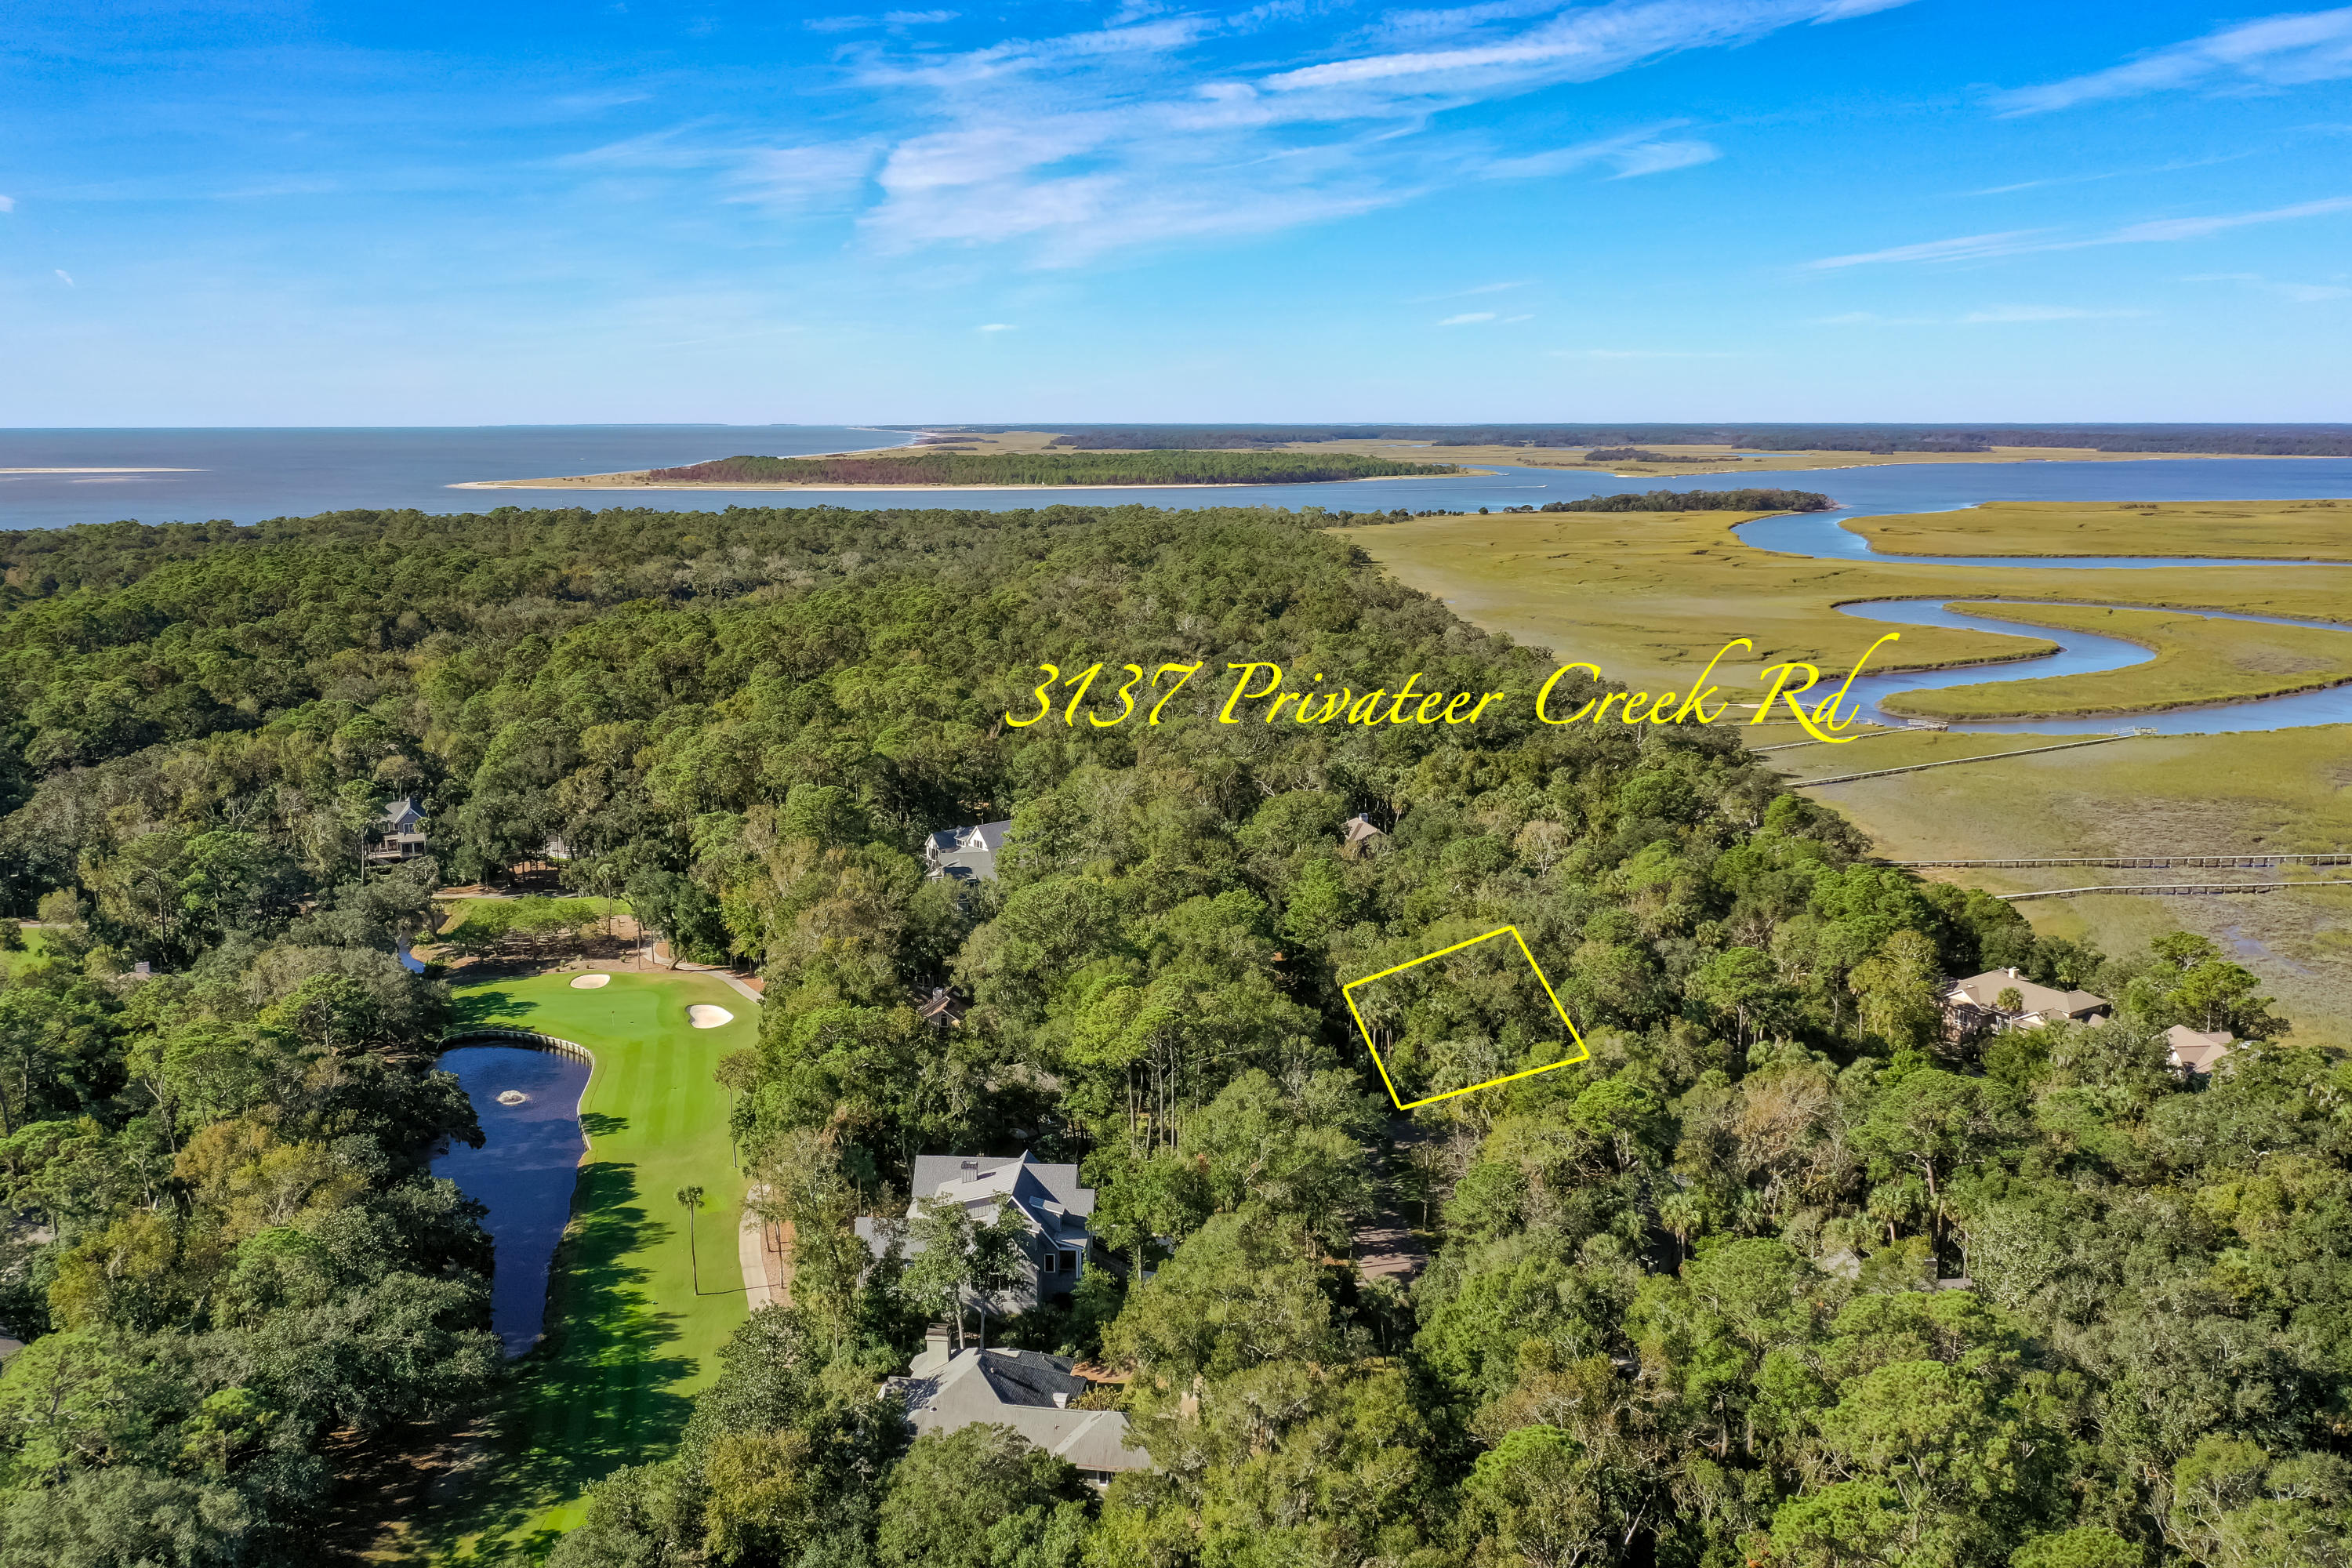 Seabrook Island Homes For Sale - 3137 Privateer Creek, Seabrook Island, SC - 43